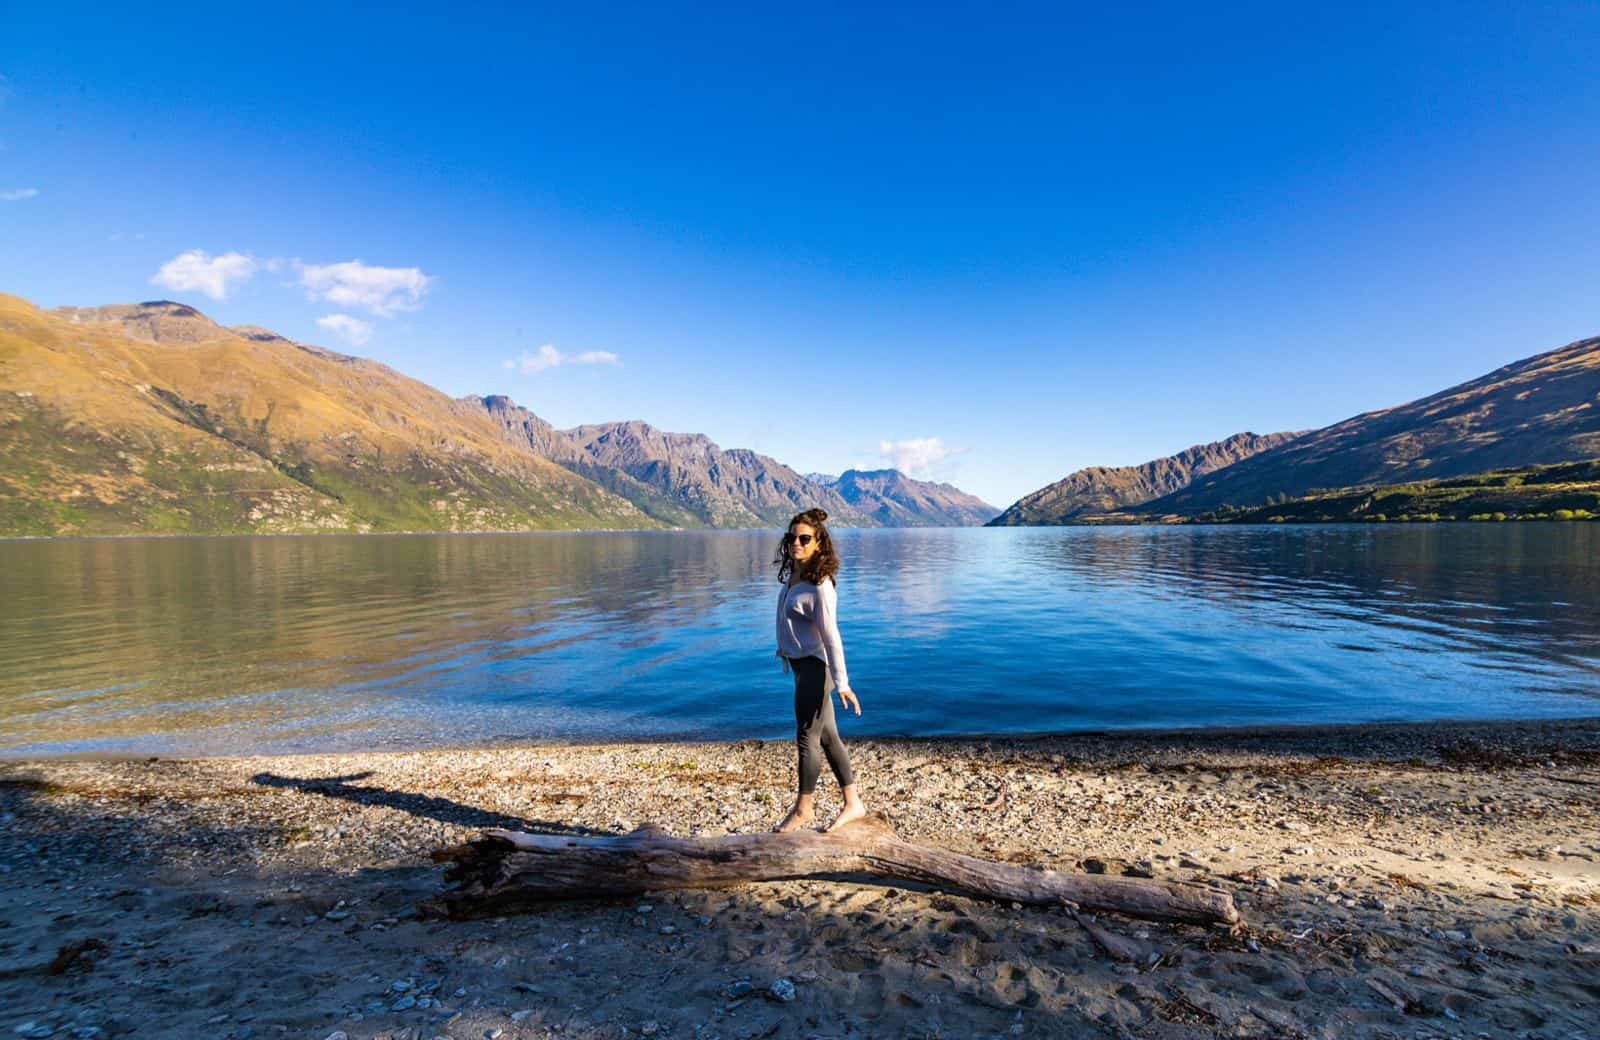 20+ Day New Zealand South Island Road Trip Itinerary